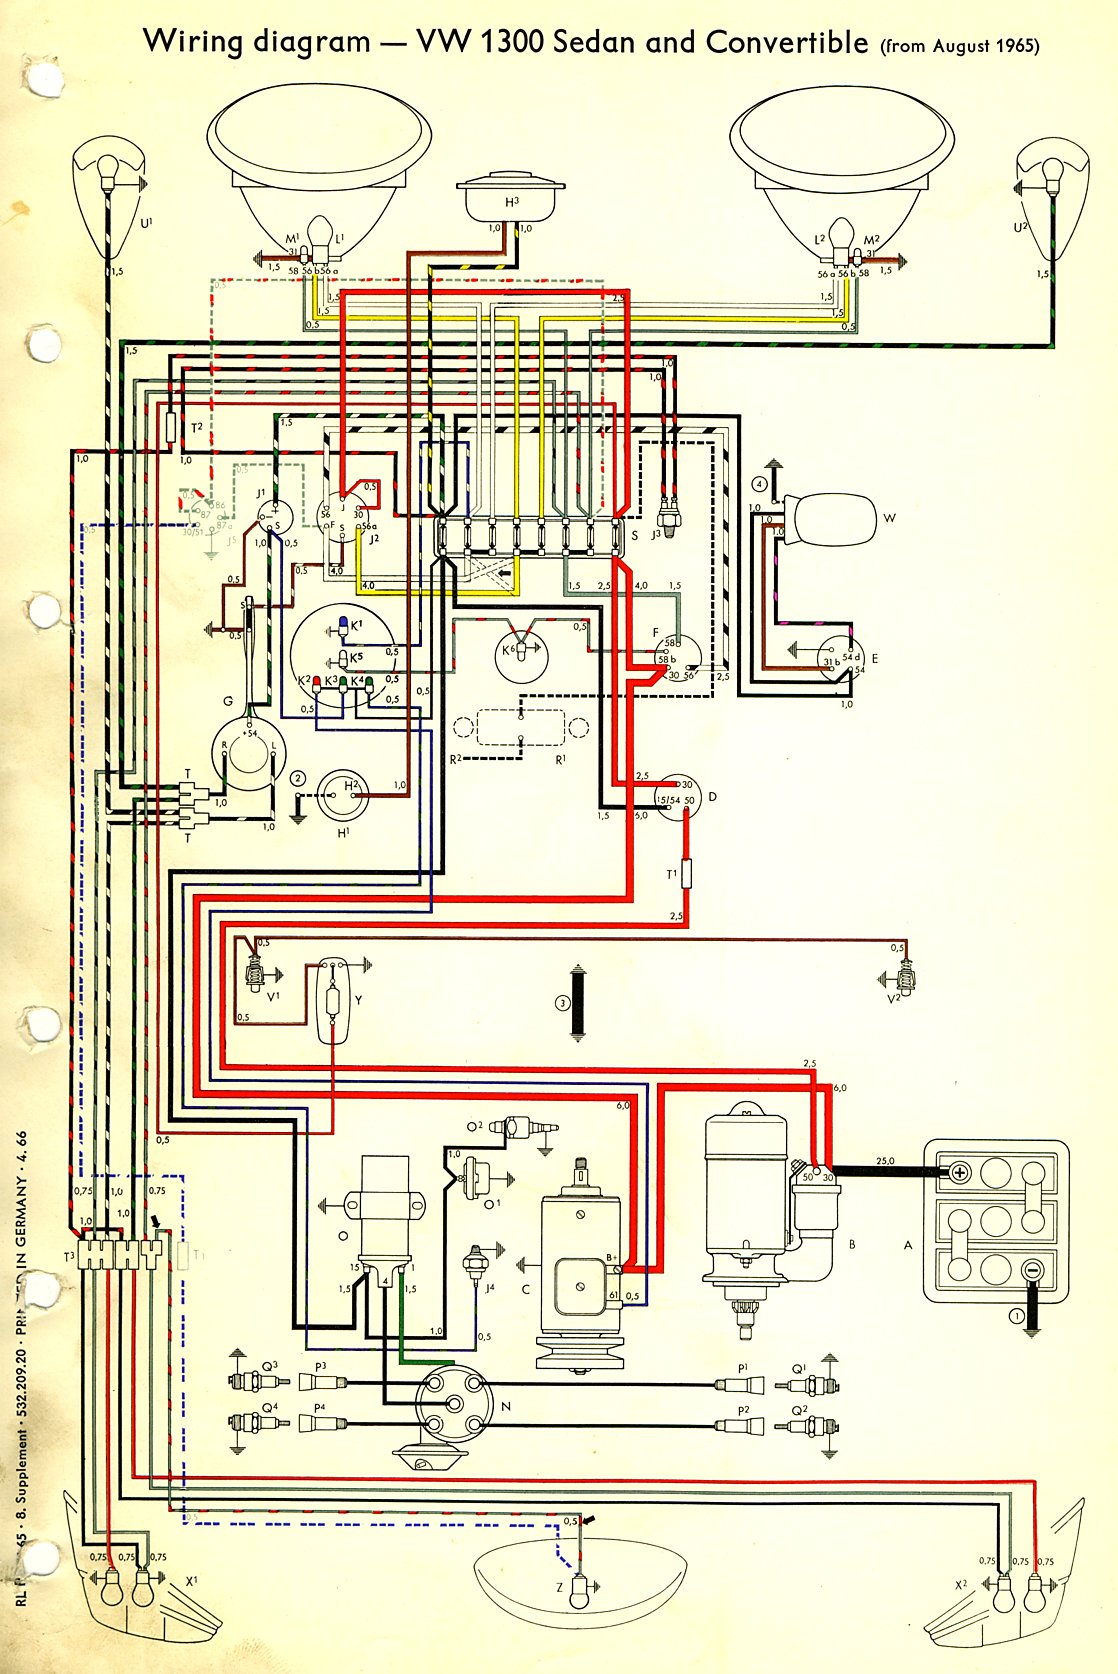 thesamba com type 1 wiring diagrams vw passat parts diagram vw beetle diagram #17